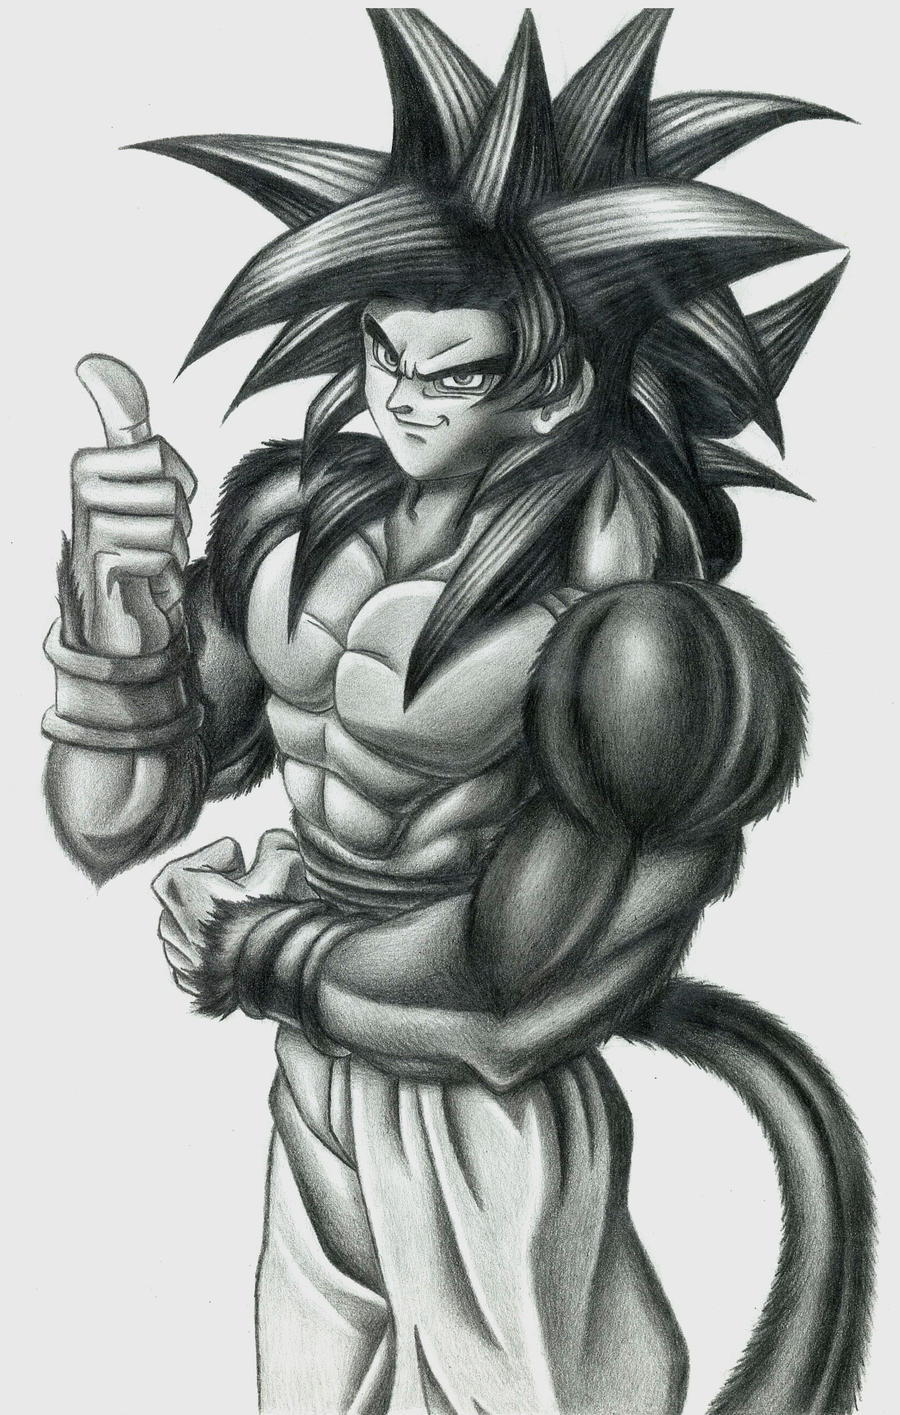 Goku fase 4 by Wawito on DeviantArt